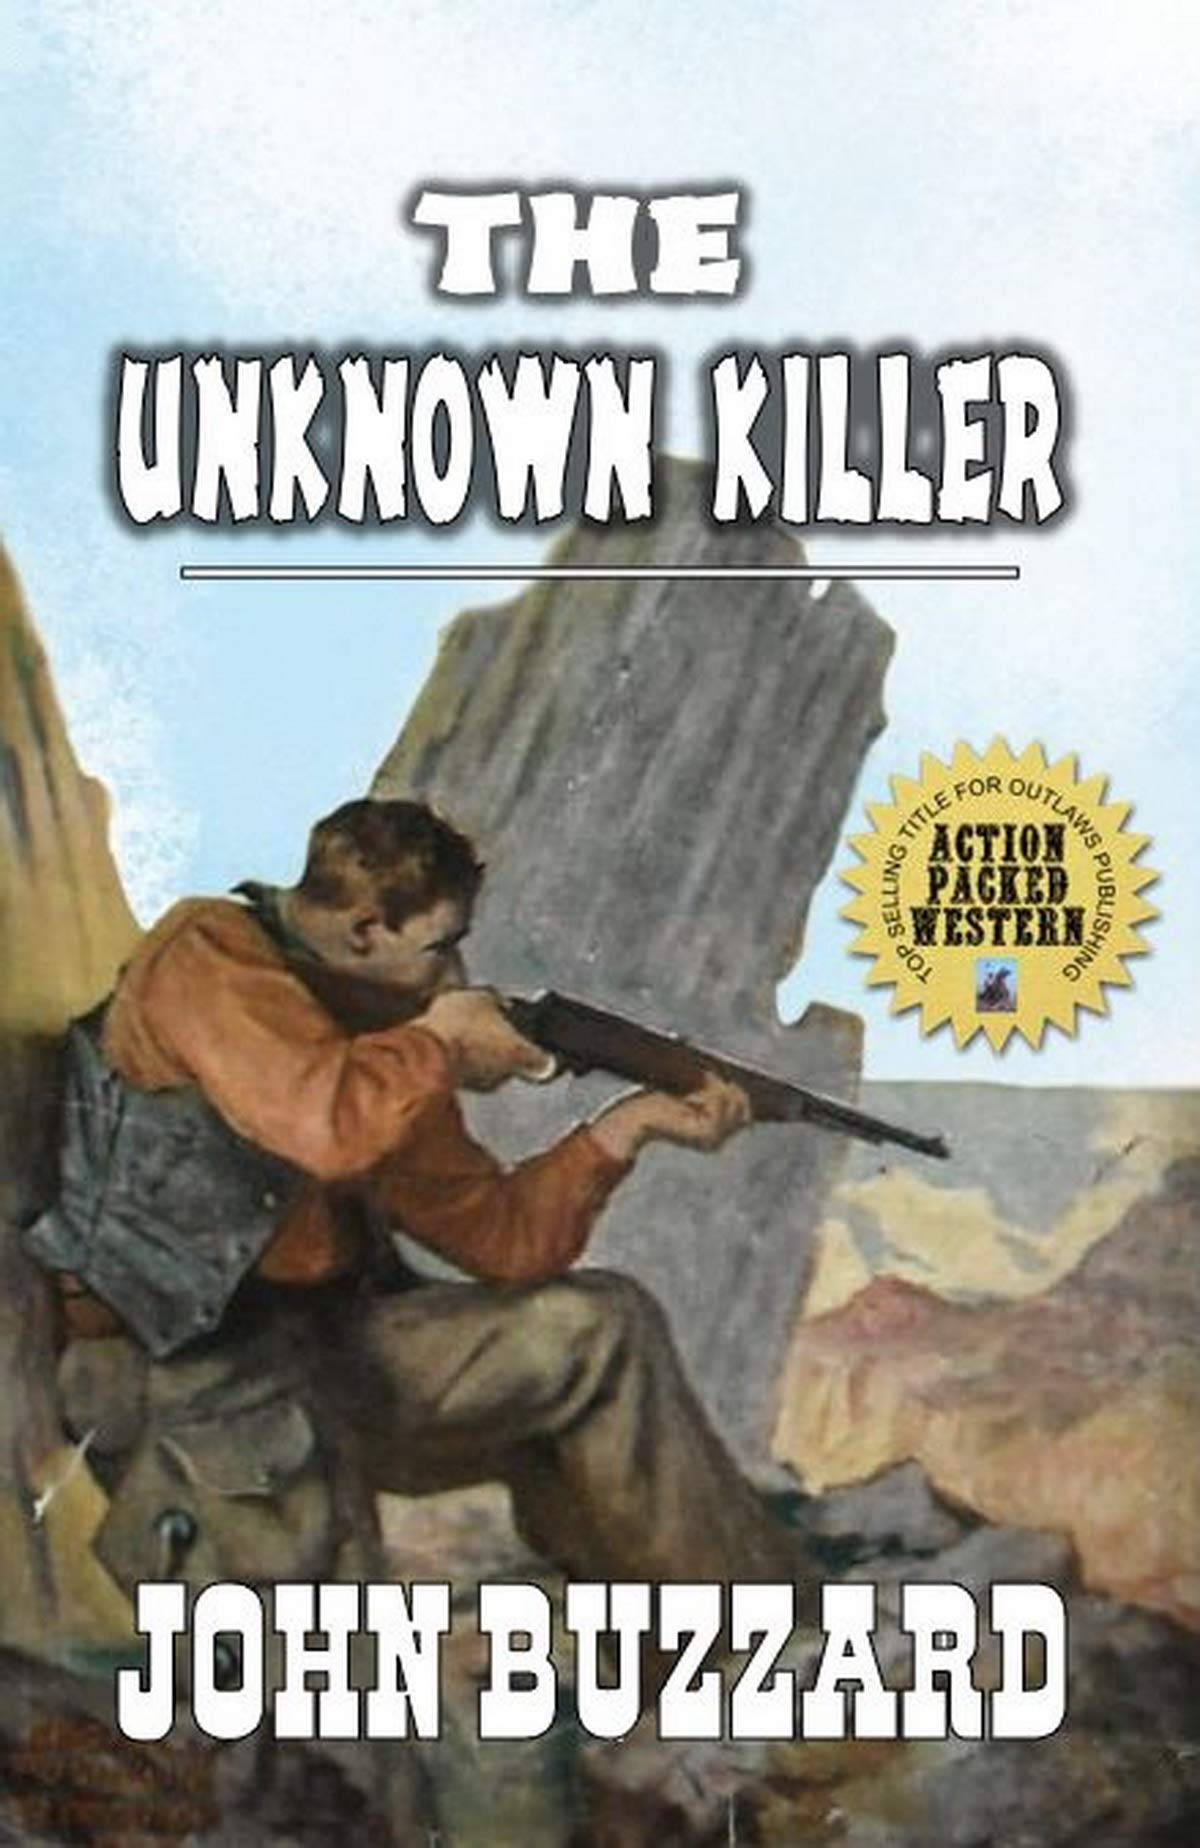 A Texan Lawman: The Unknown Killer: The Lawman From Texas: A Texan Western Adventure (English Edition)